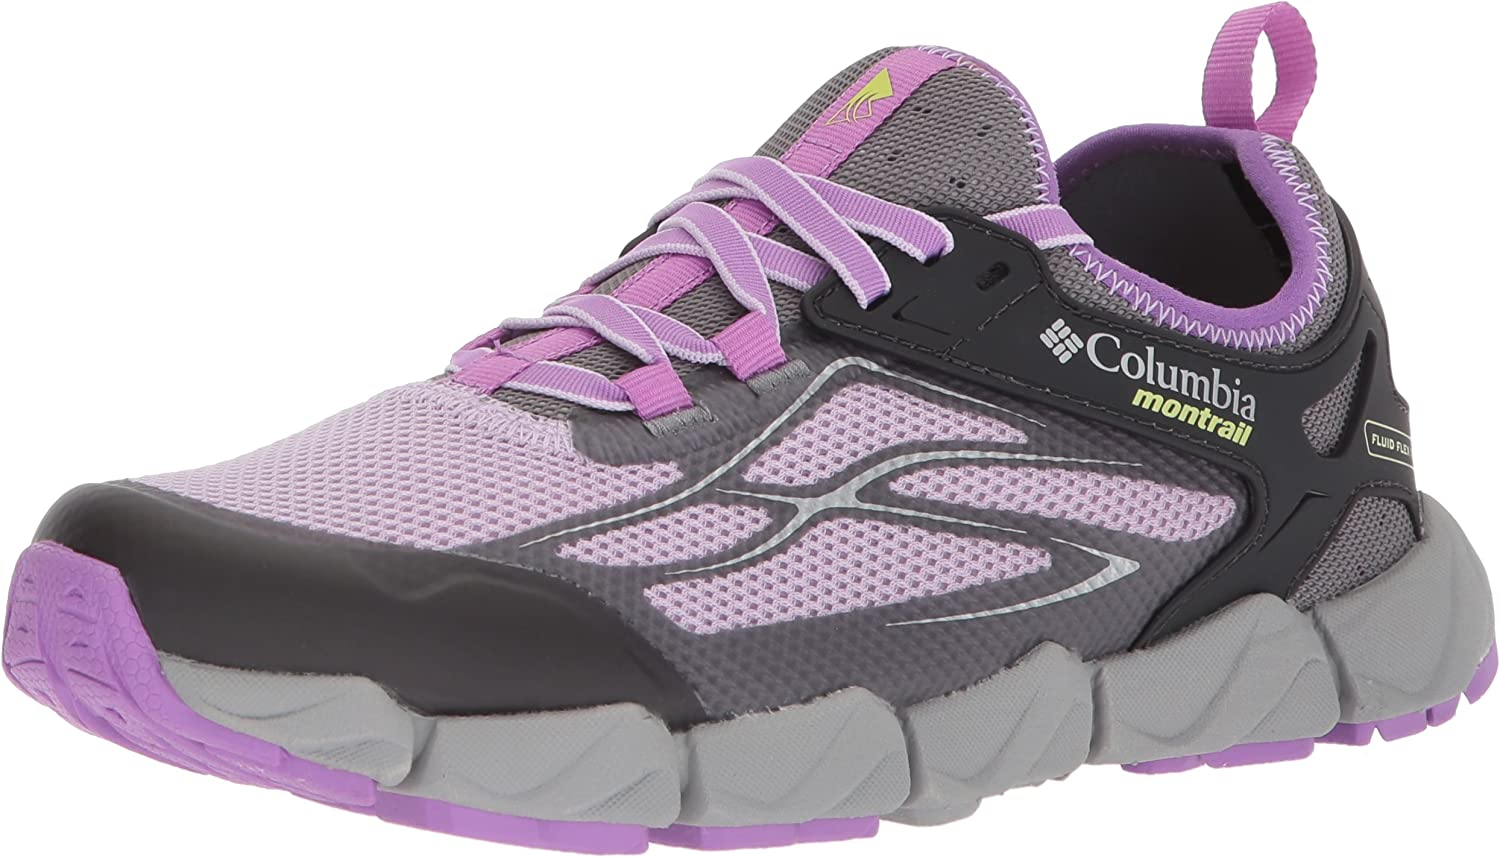 Columbia Women s Fluidflex X.S.R. Trail Running Shoe, Phantom Purple, Nappa Green, 7 B US